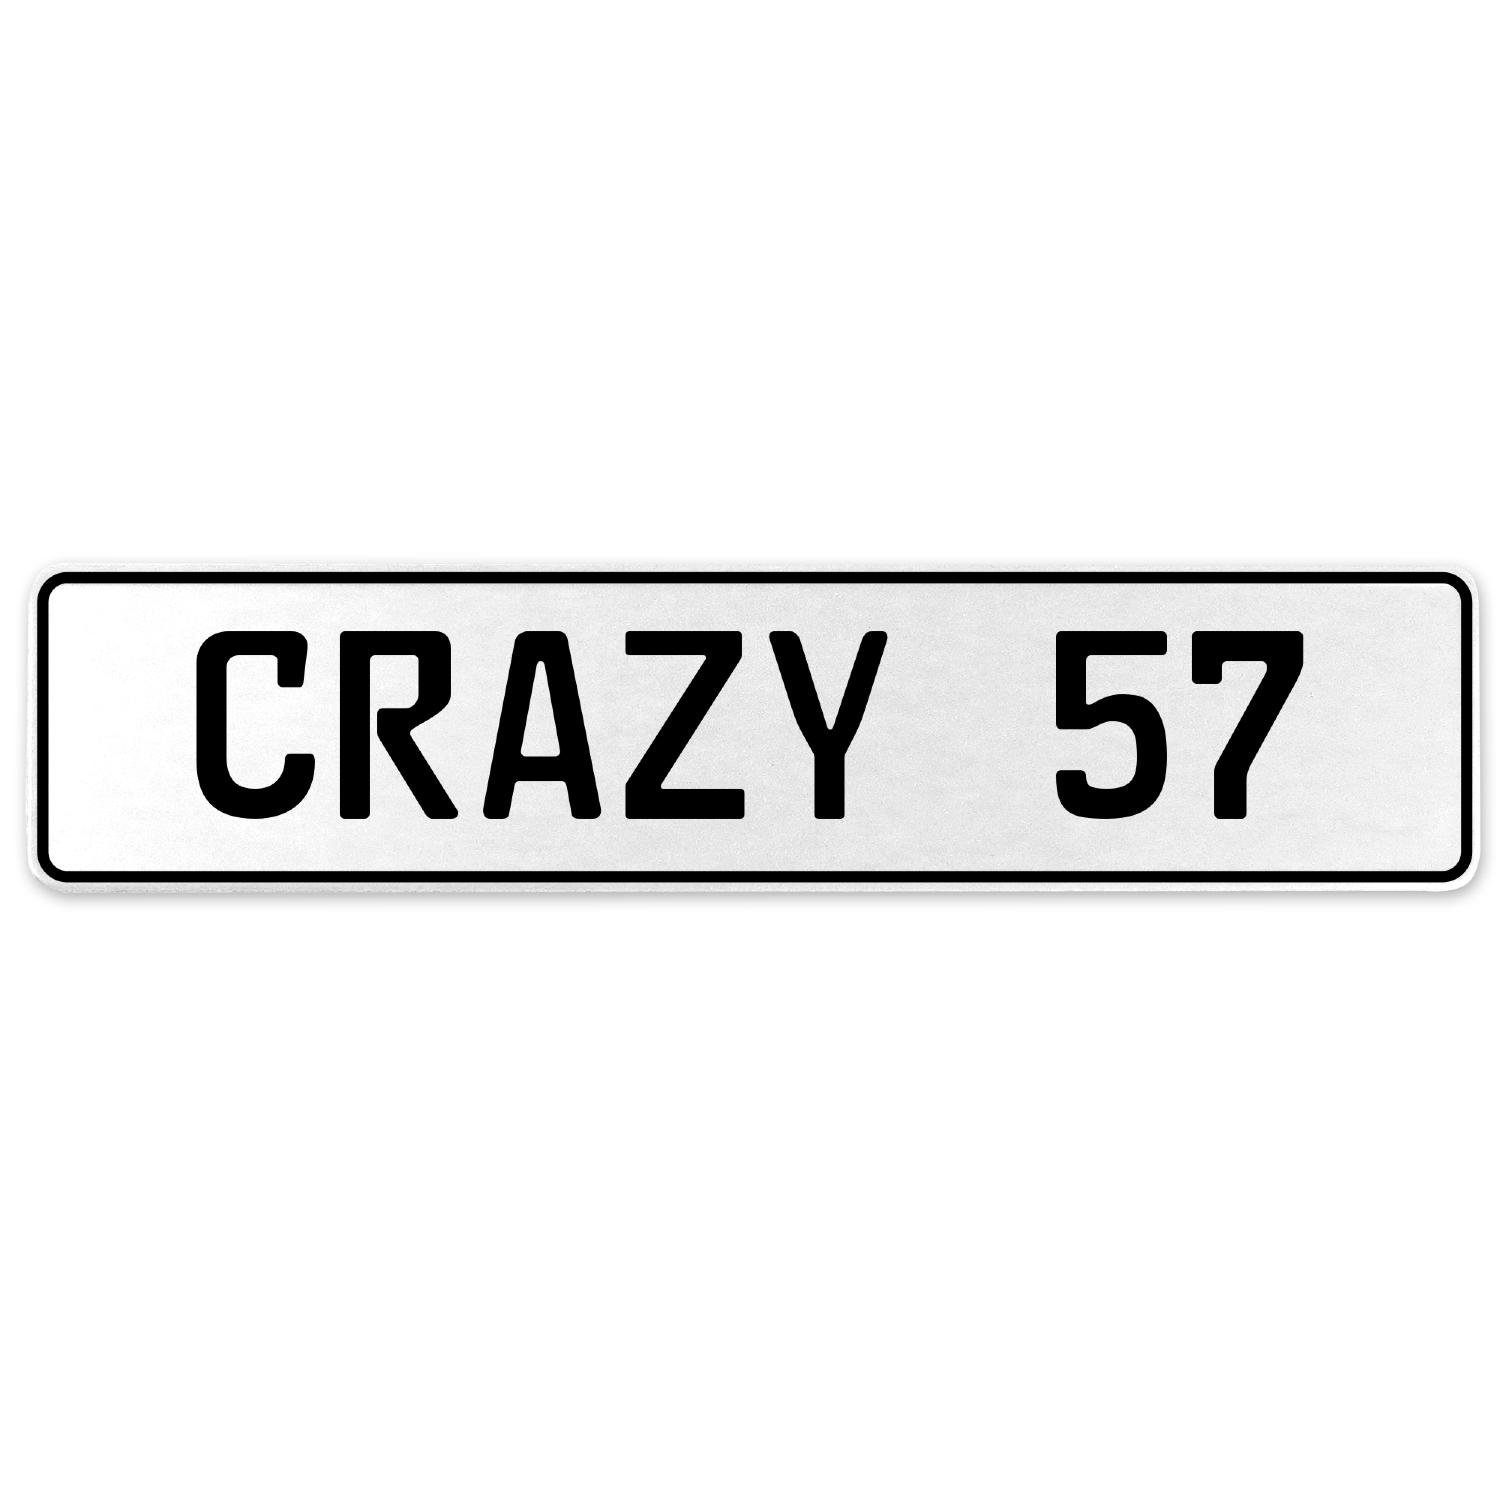 Vintage Parts 555644 Crazy 57 White Stamped Aluminum European License Plate